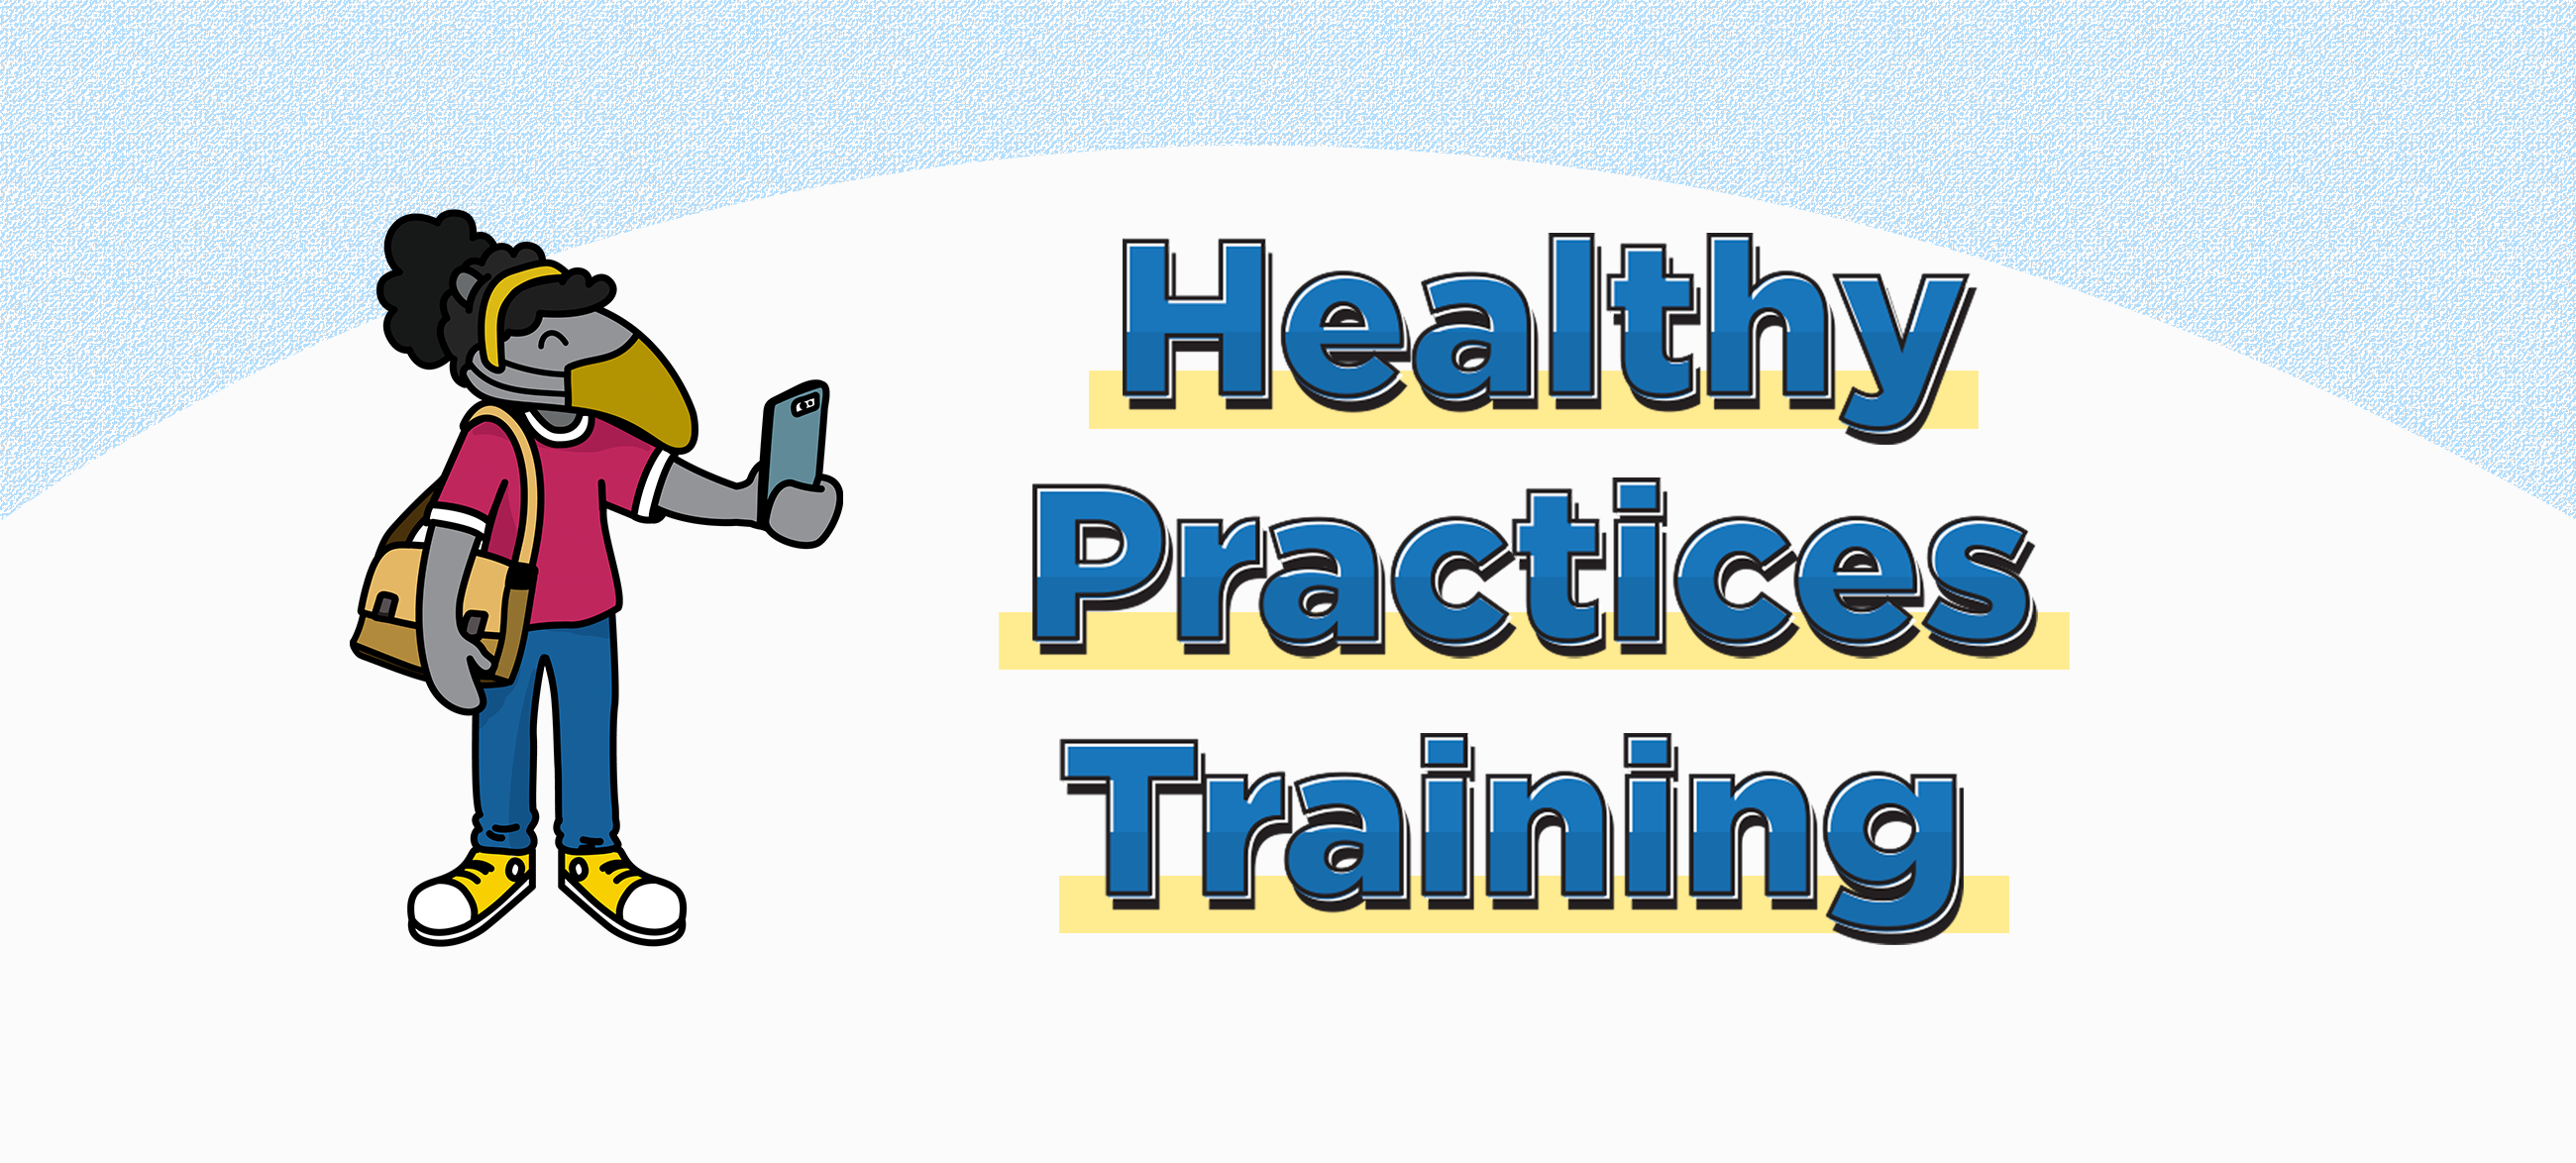 Healthy practices training graphic